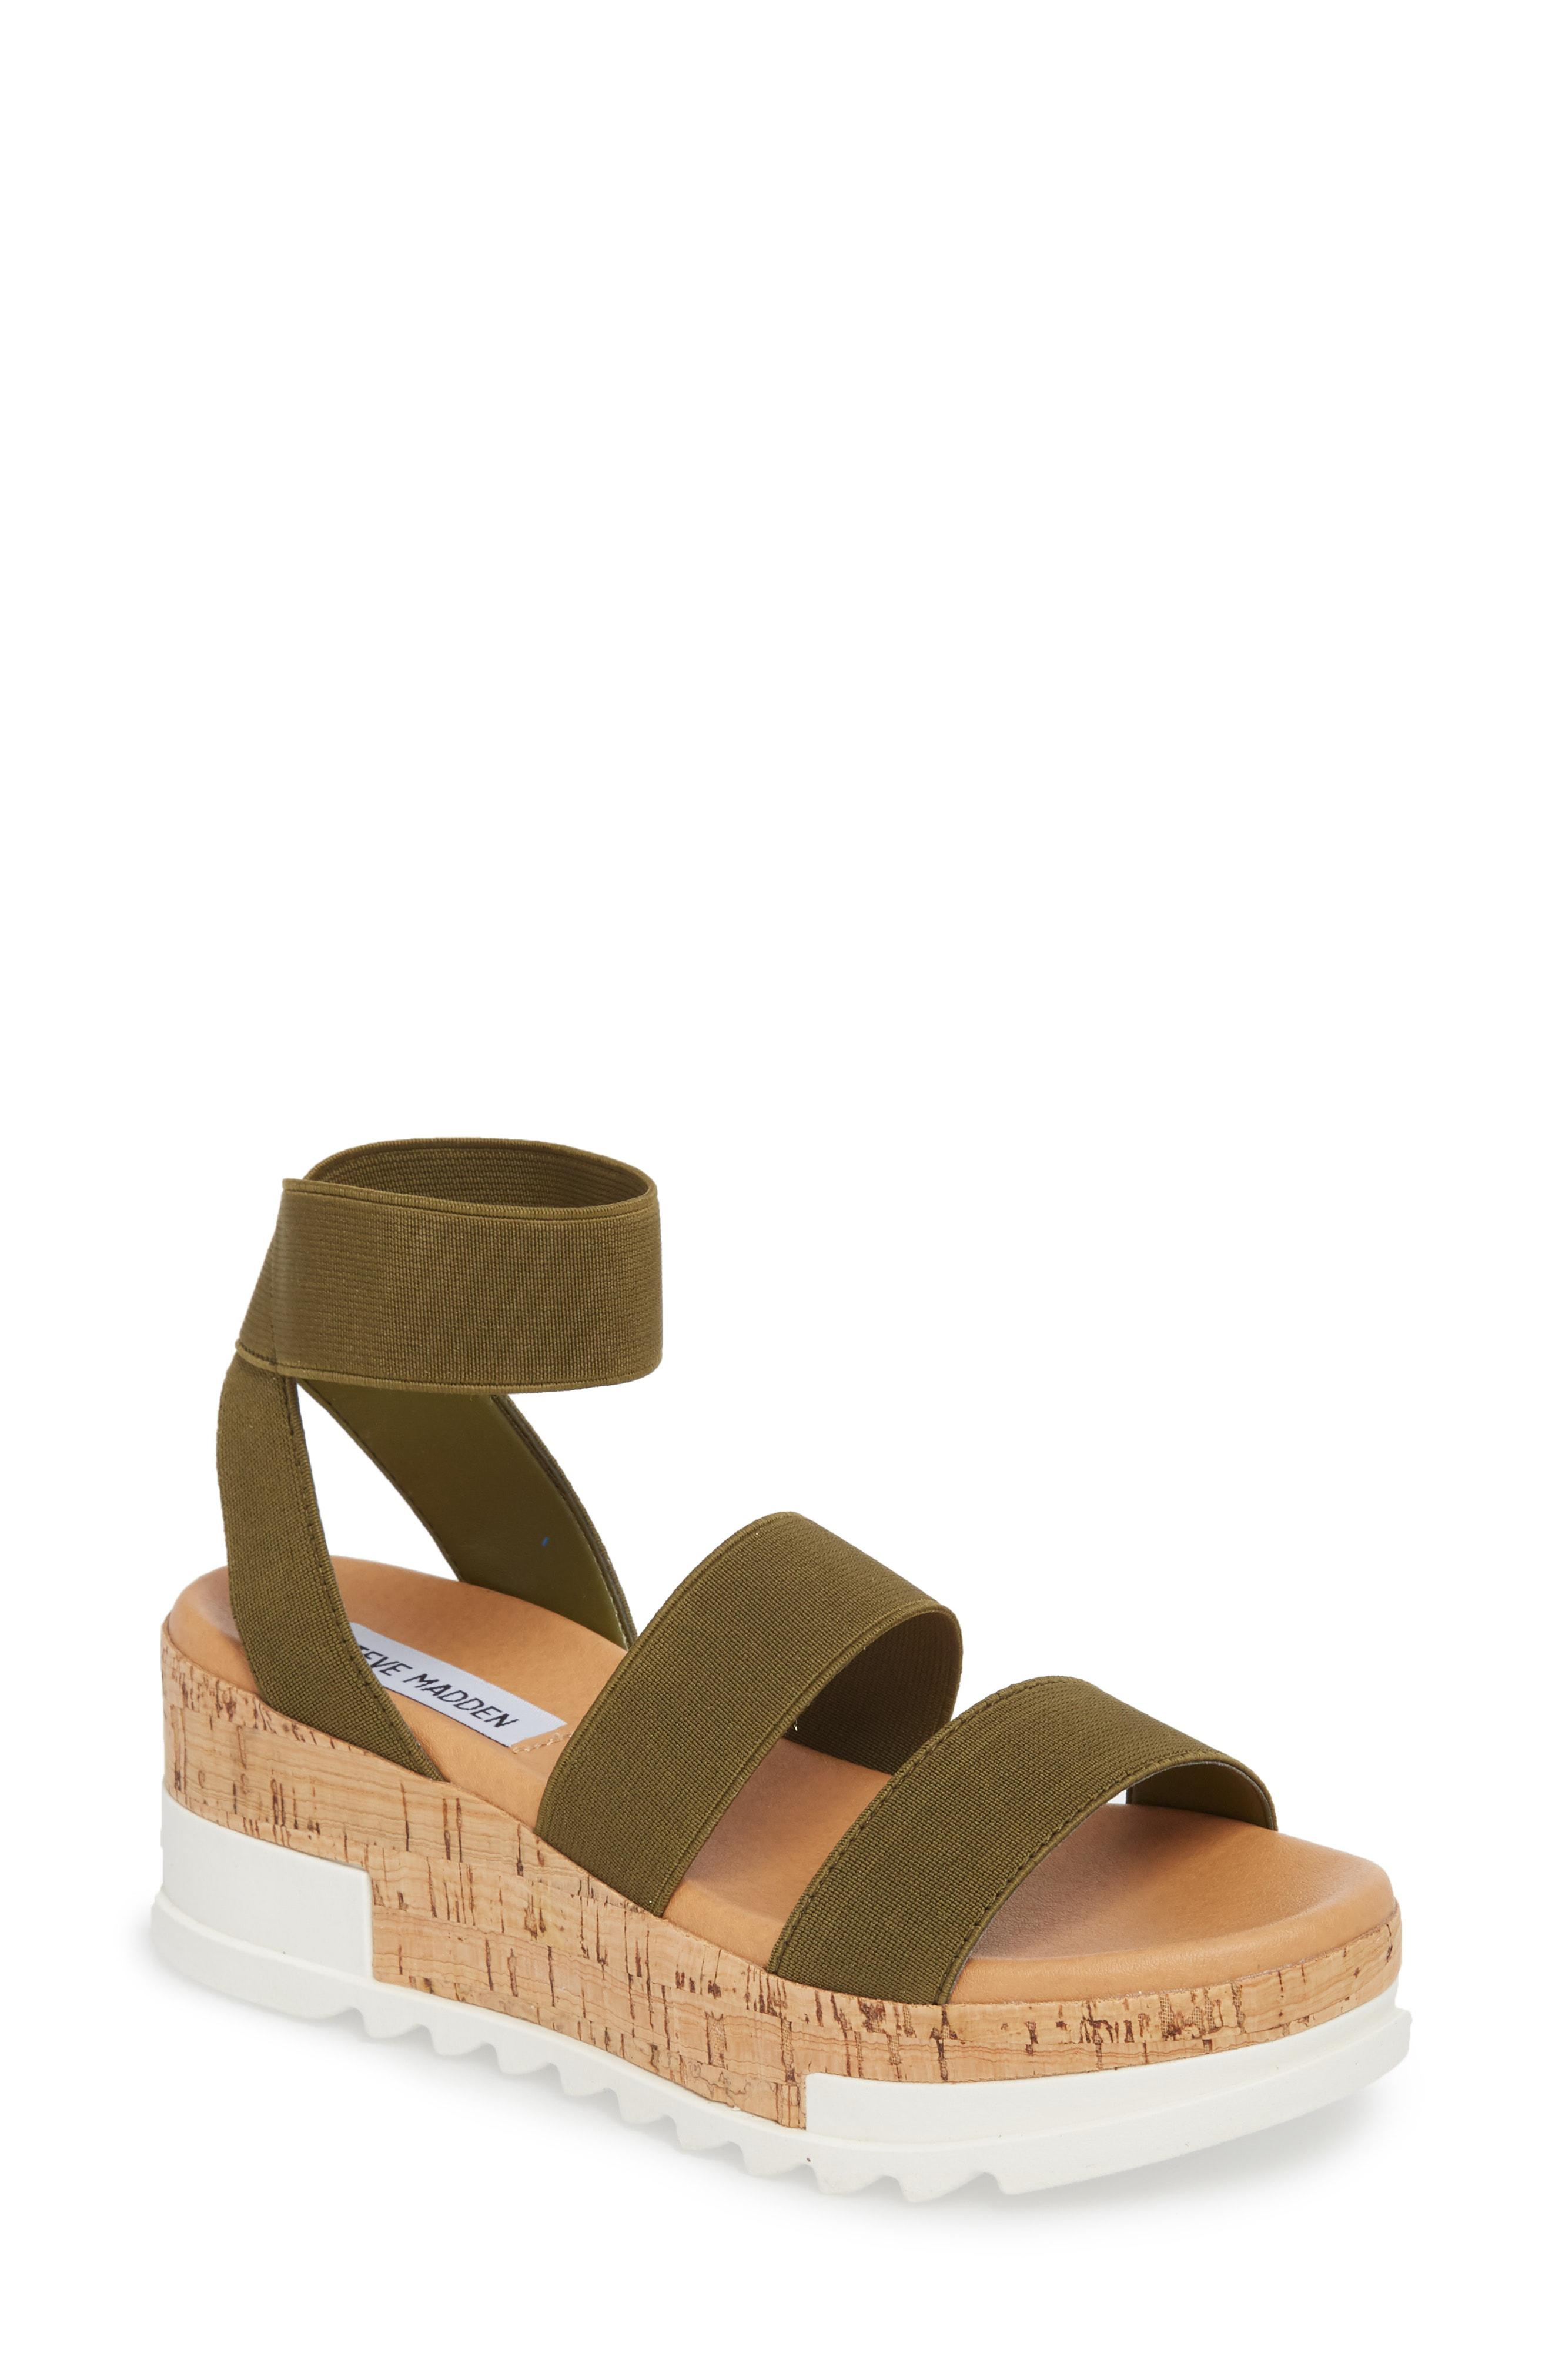 202347800db Steve Madden Bandi Platform Wedge Sandal in Green - Save 11% - Lyst